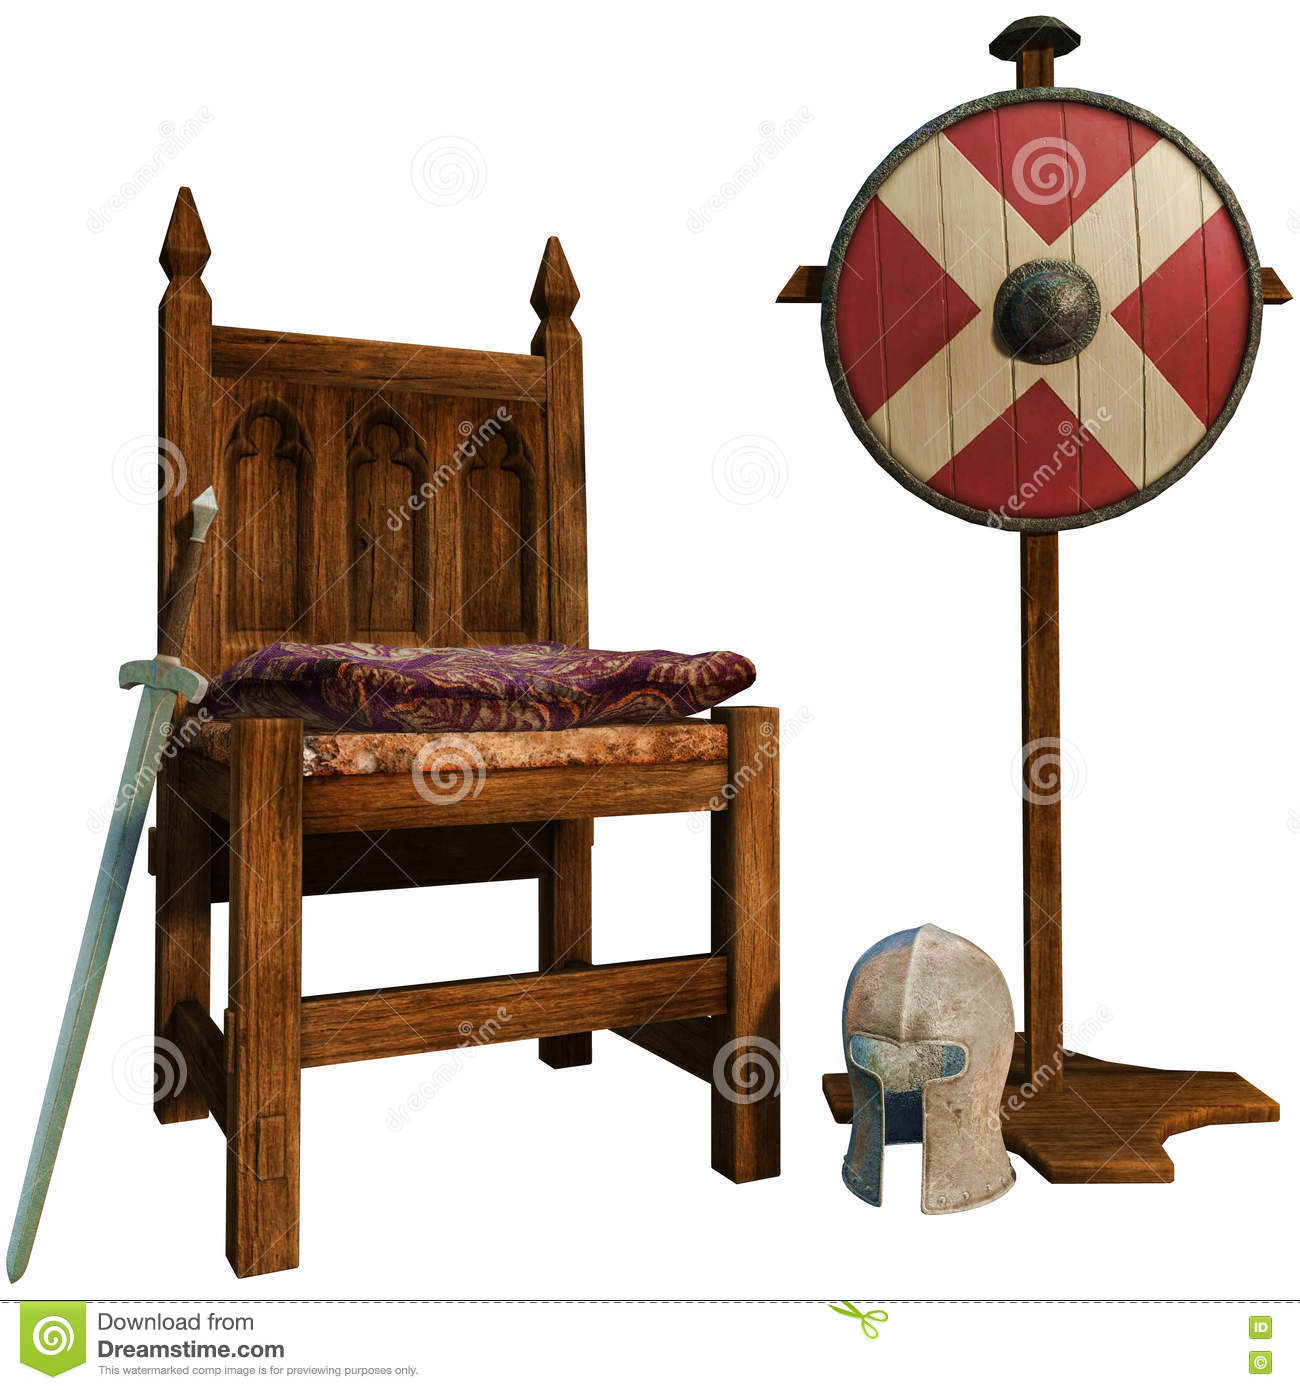 3D render of a medieval chair sword helmet and shield  sc 1 st  Dreamstime.com : medieval chair - lorbestier.org